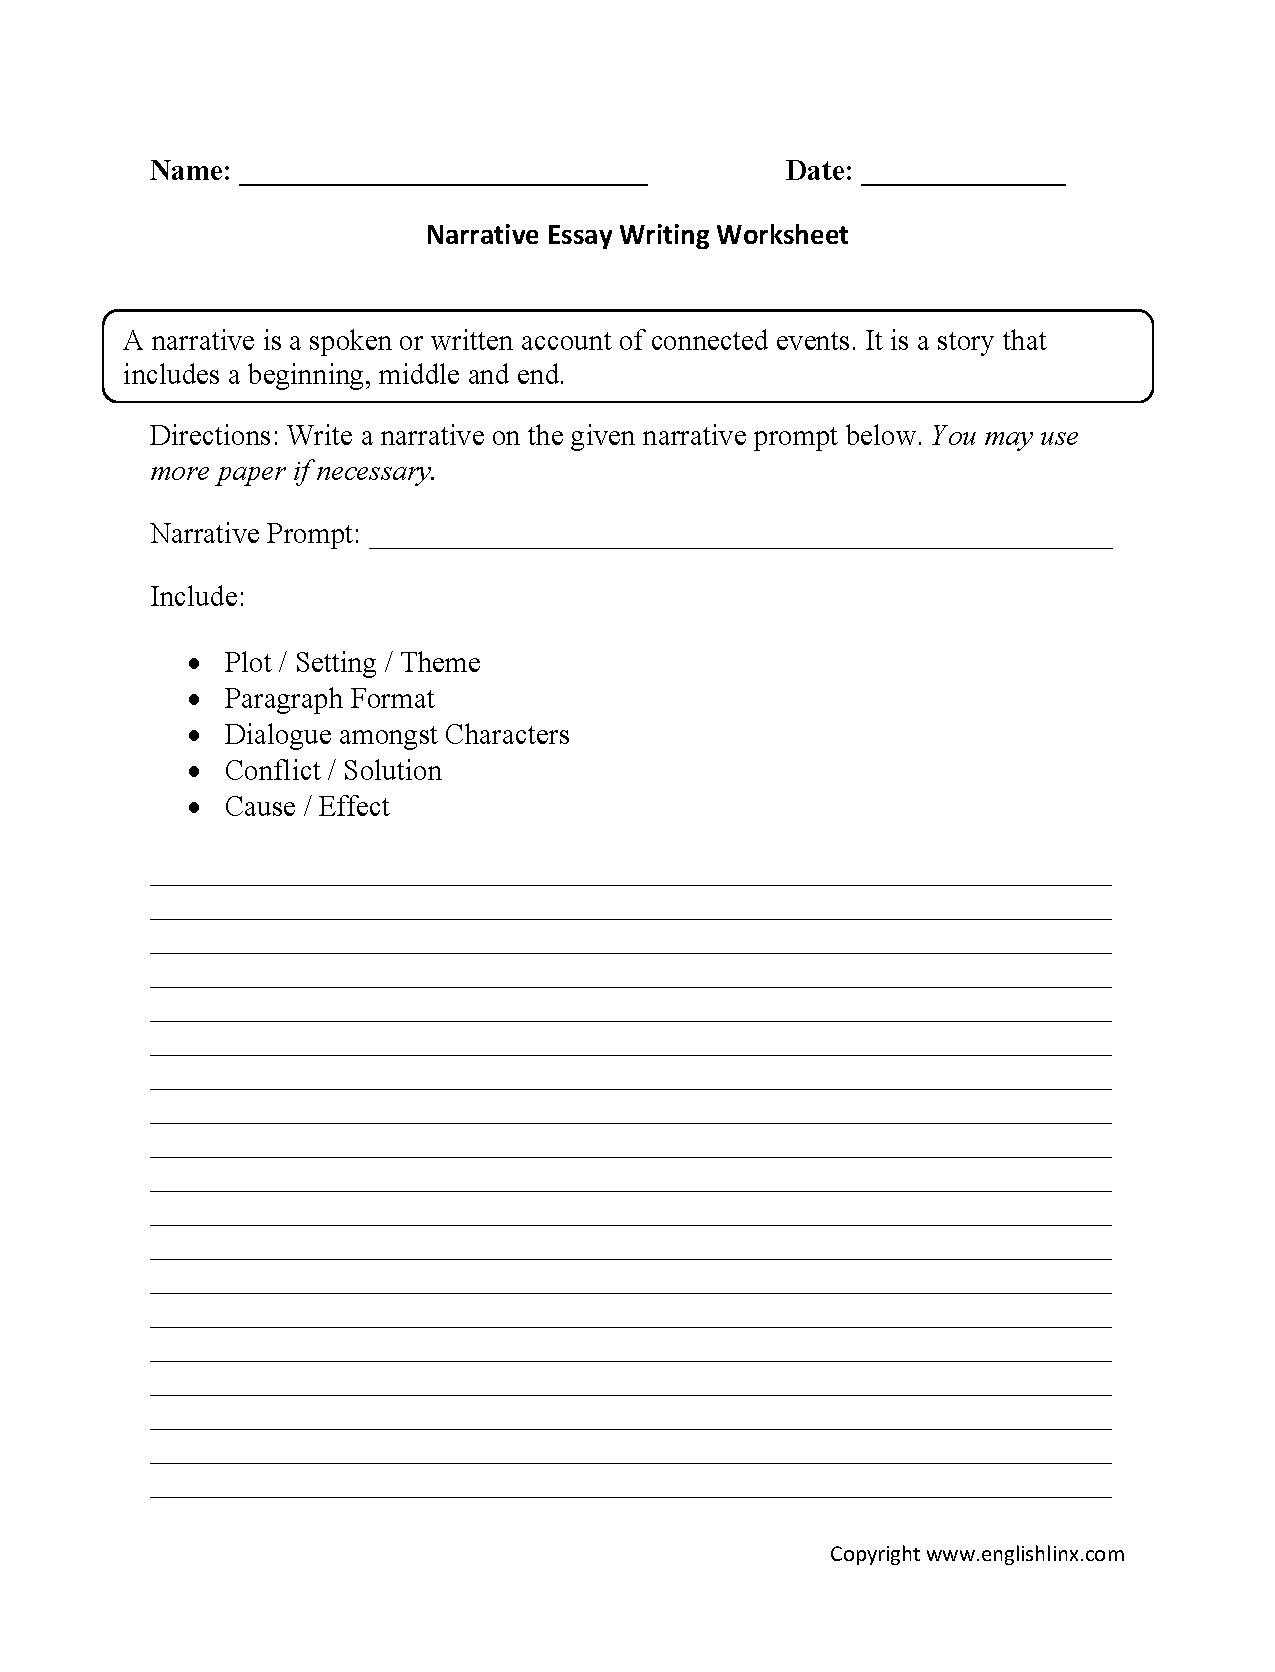 worksheet essay structure worksheet worksheet study site how to write an essay outline worksheet essay